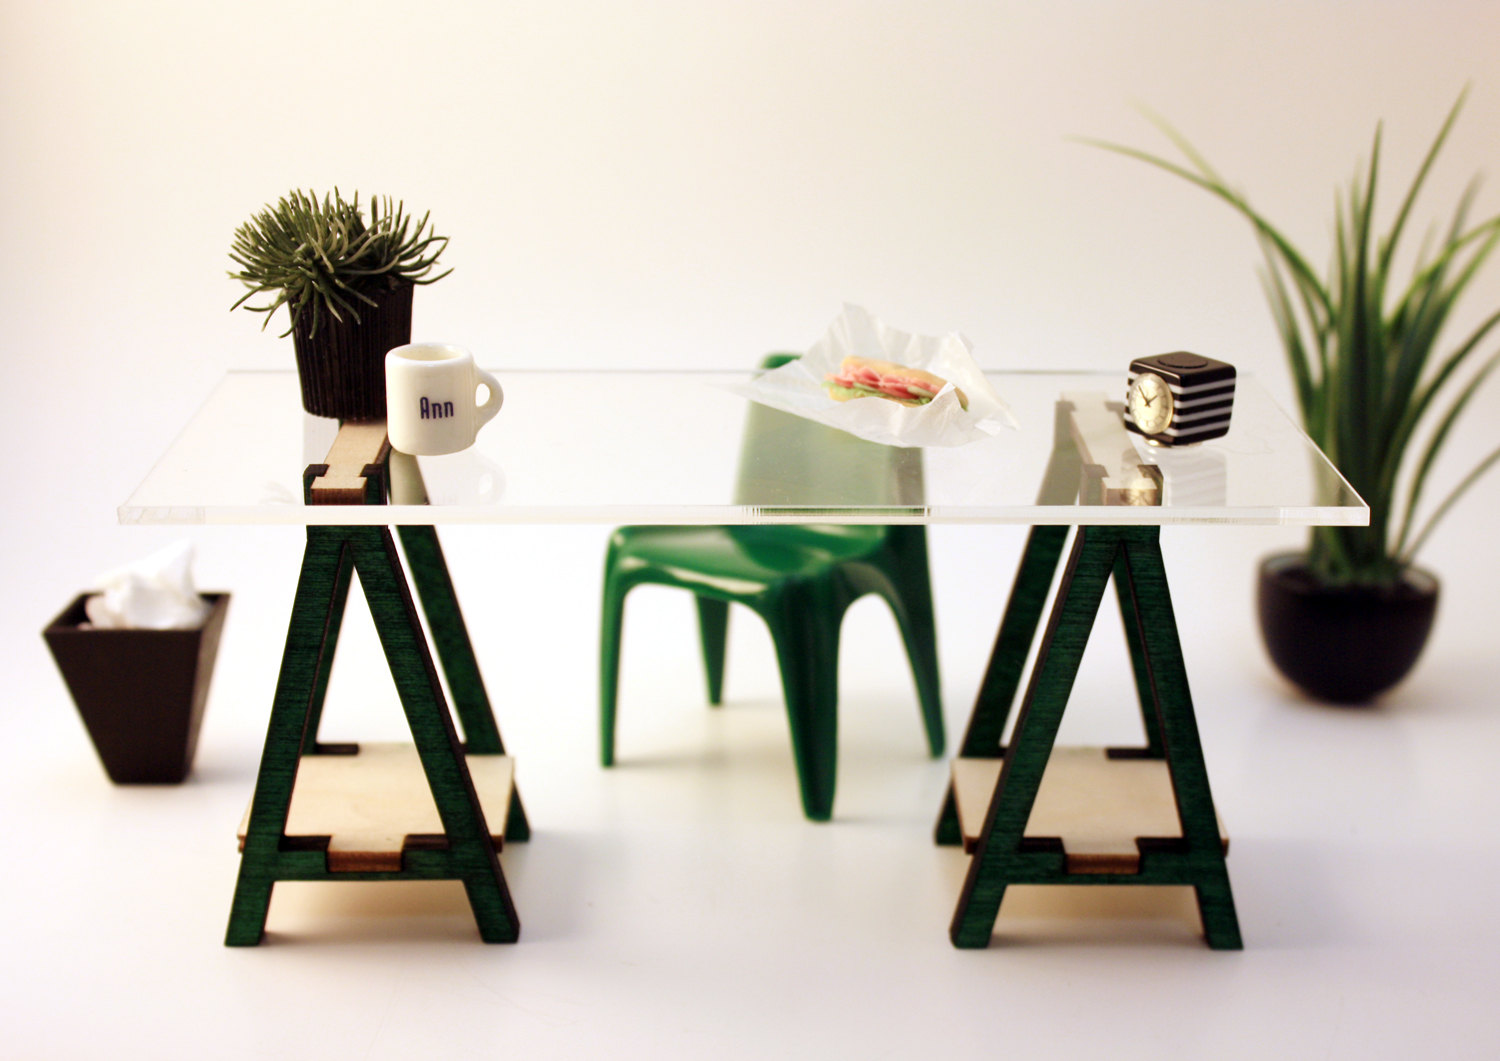 Miniature Ikea Inspired Vika Desk Kit For 1 12 Scale Modern Dollhouse In Wood From Amazing Miniatures